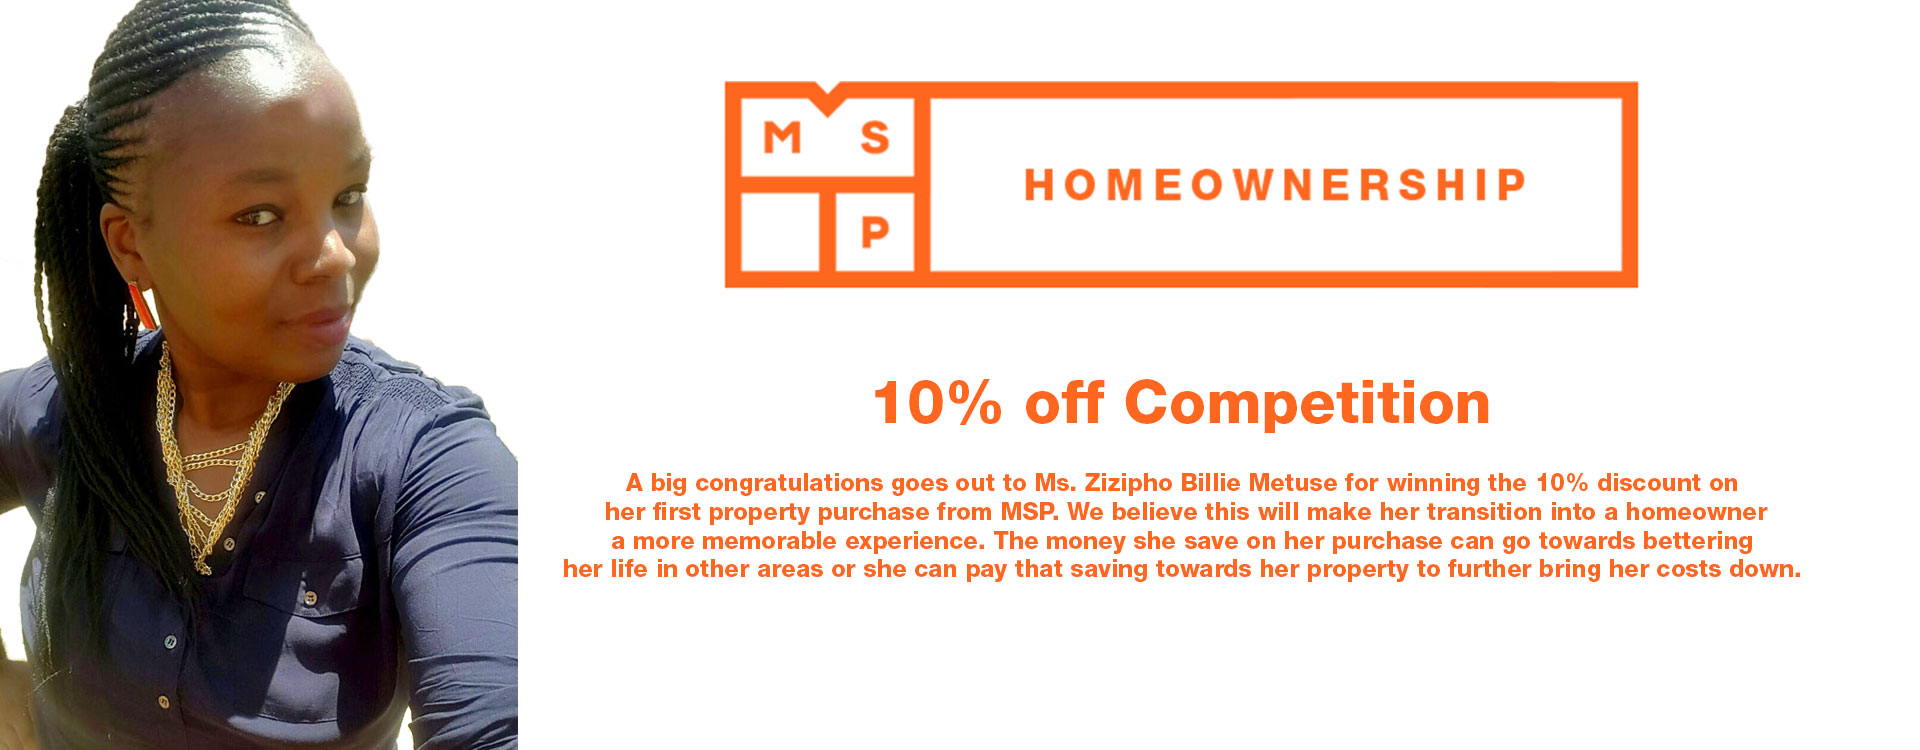 homeownership-competition-winner-10-percent-discount